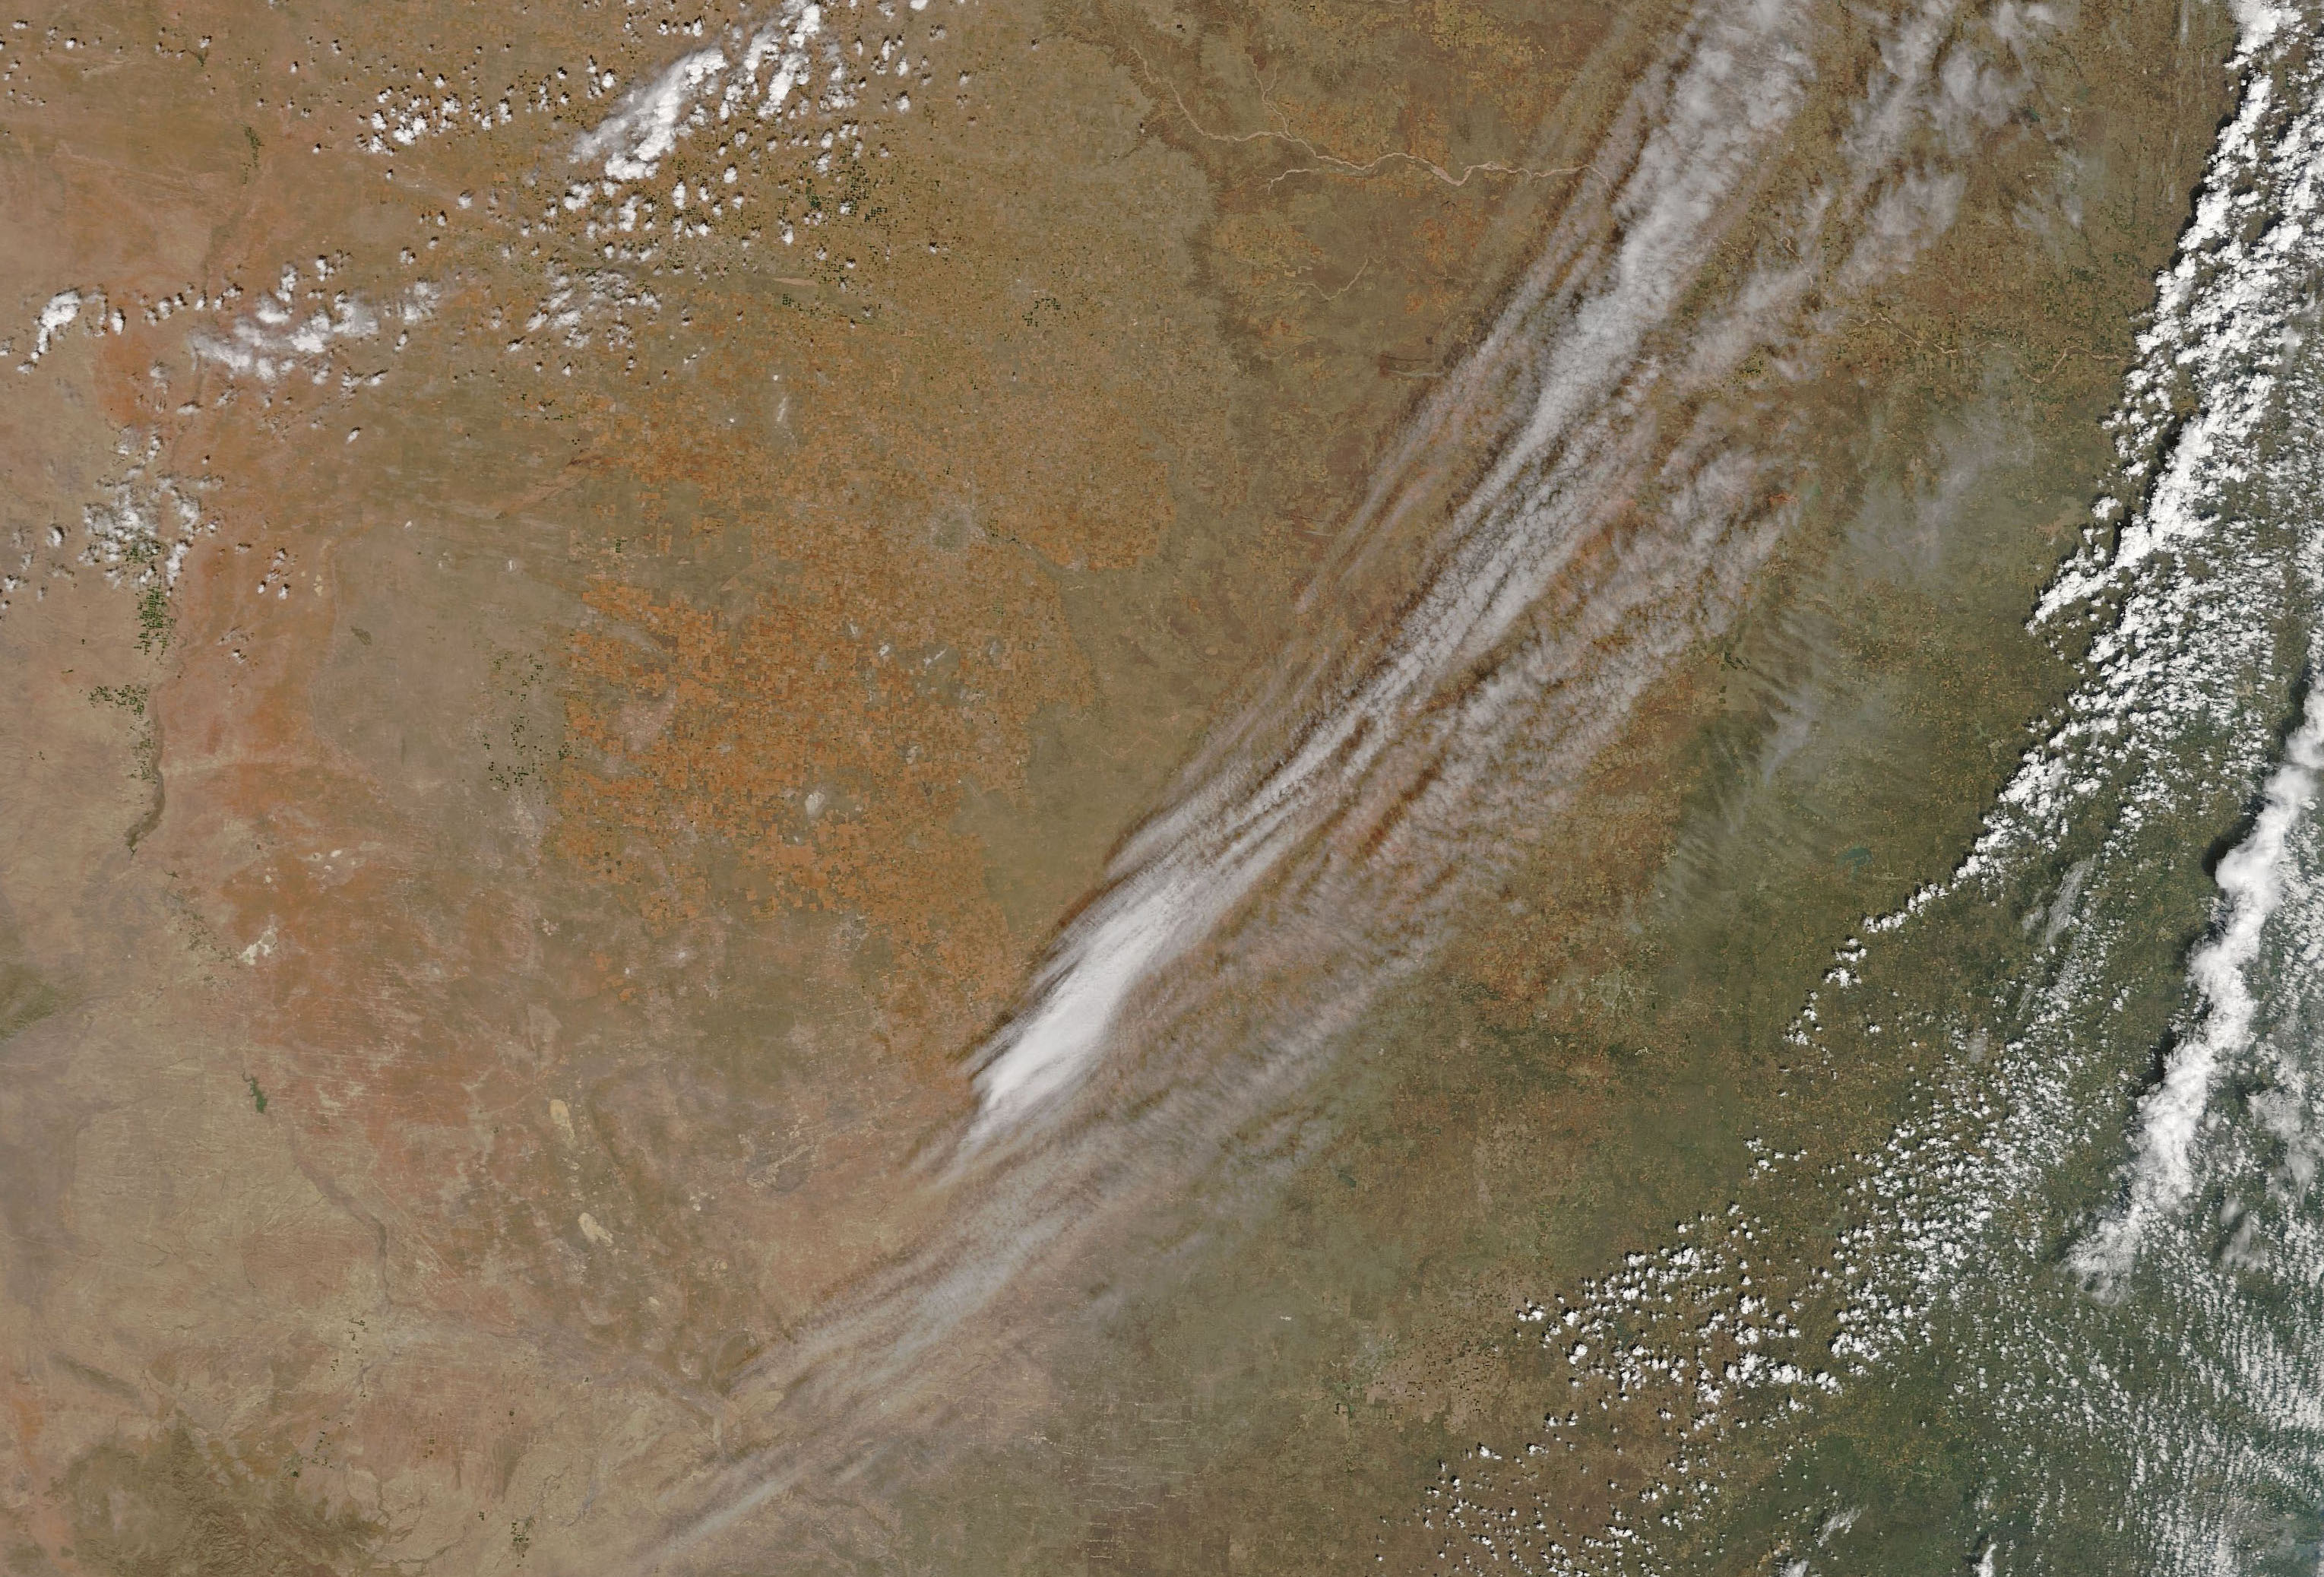 Today's Image of the Day comes from the NASA Earth Observatory and features a look at dangerous fires blazing across western Oklahoma.